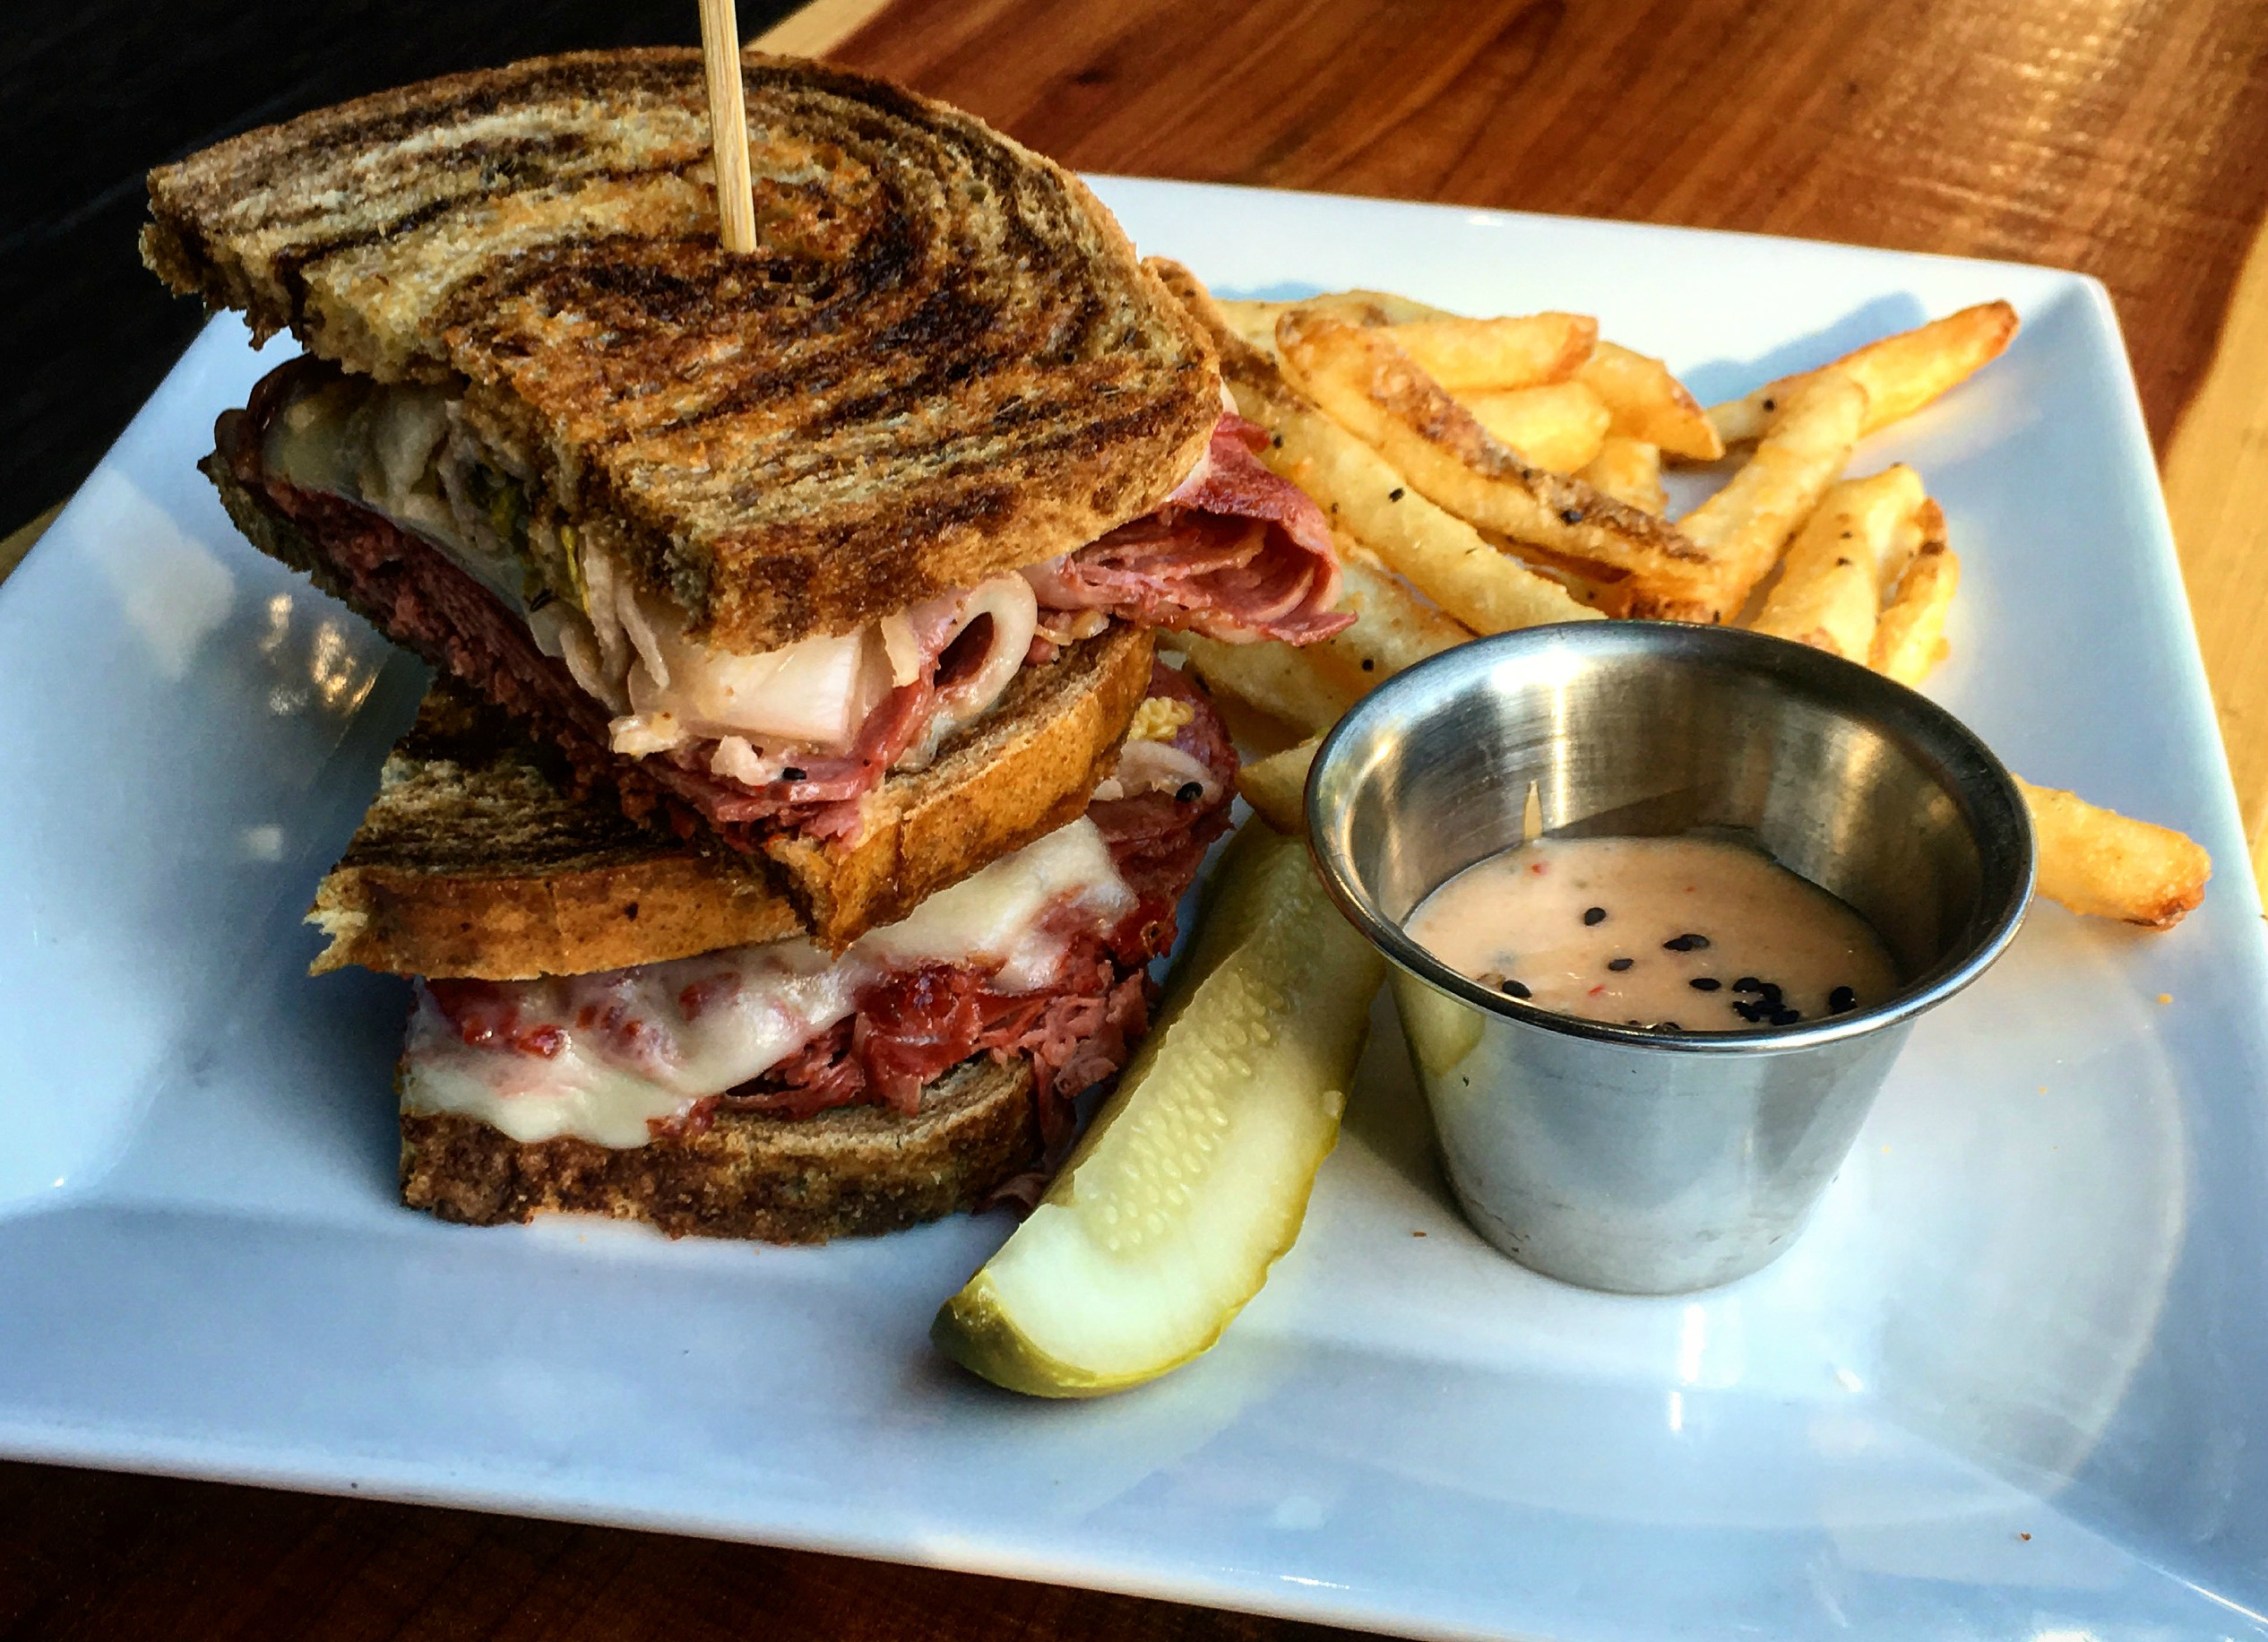 reubenesque. shaved corned beef, swiss cheese, kimchi, sweet chili mayo,  grilled rye